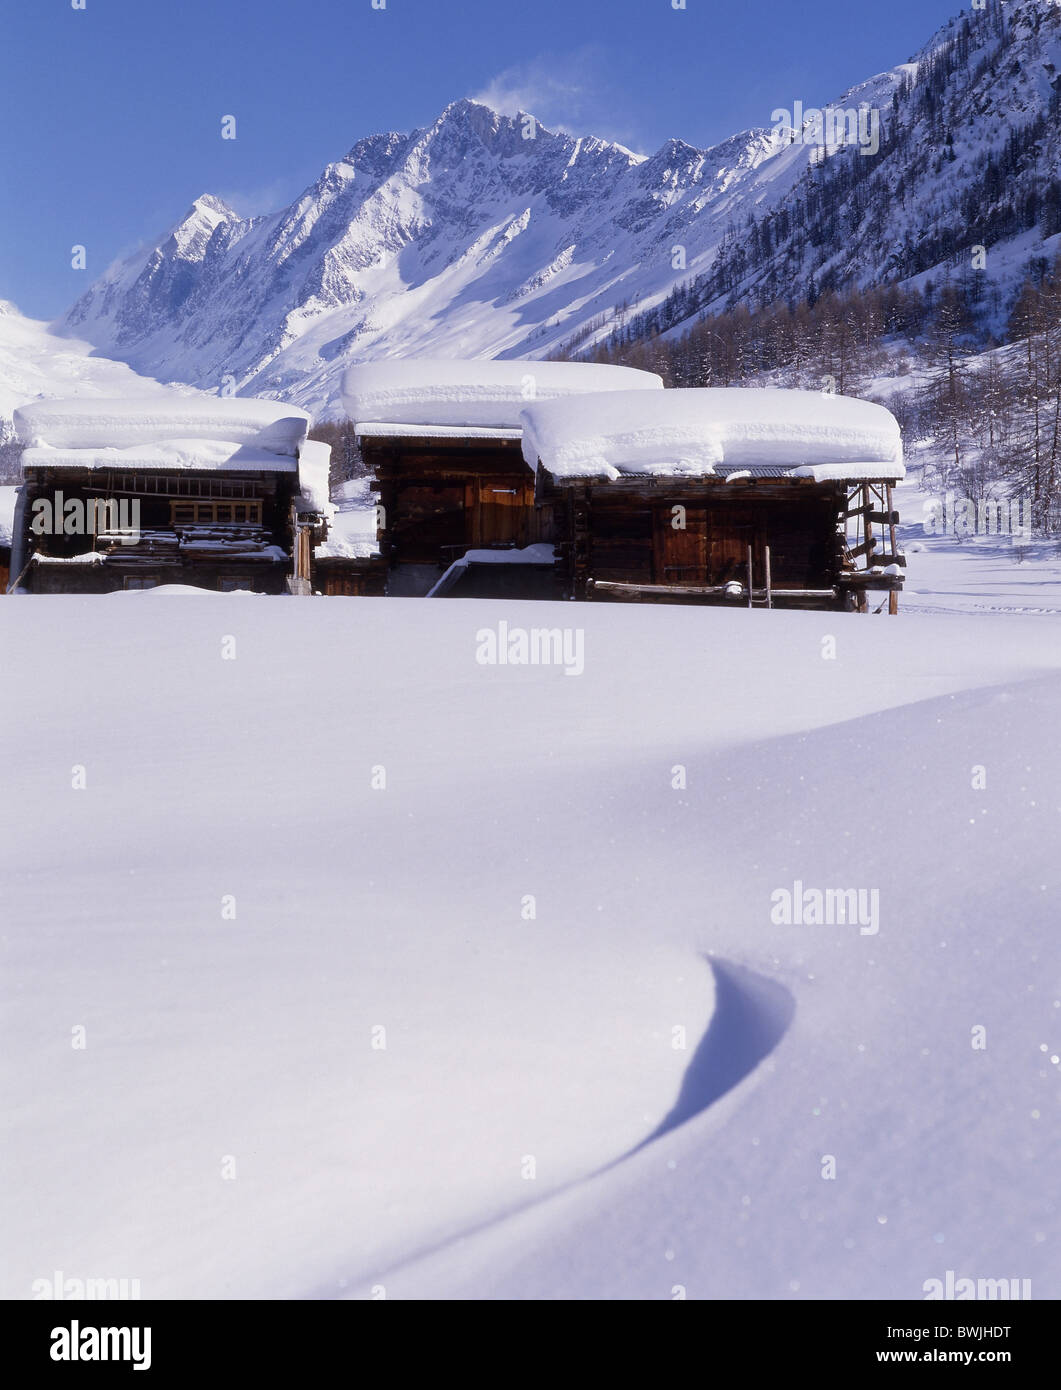 Lotschental hamlet snowbound snow-covered snowy alpine huts huts barns fresh snowfall snow mountains valley - Stock Image